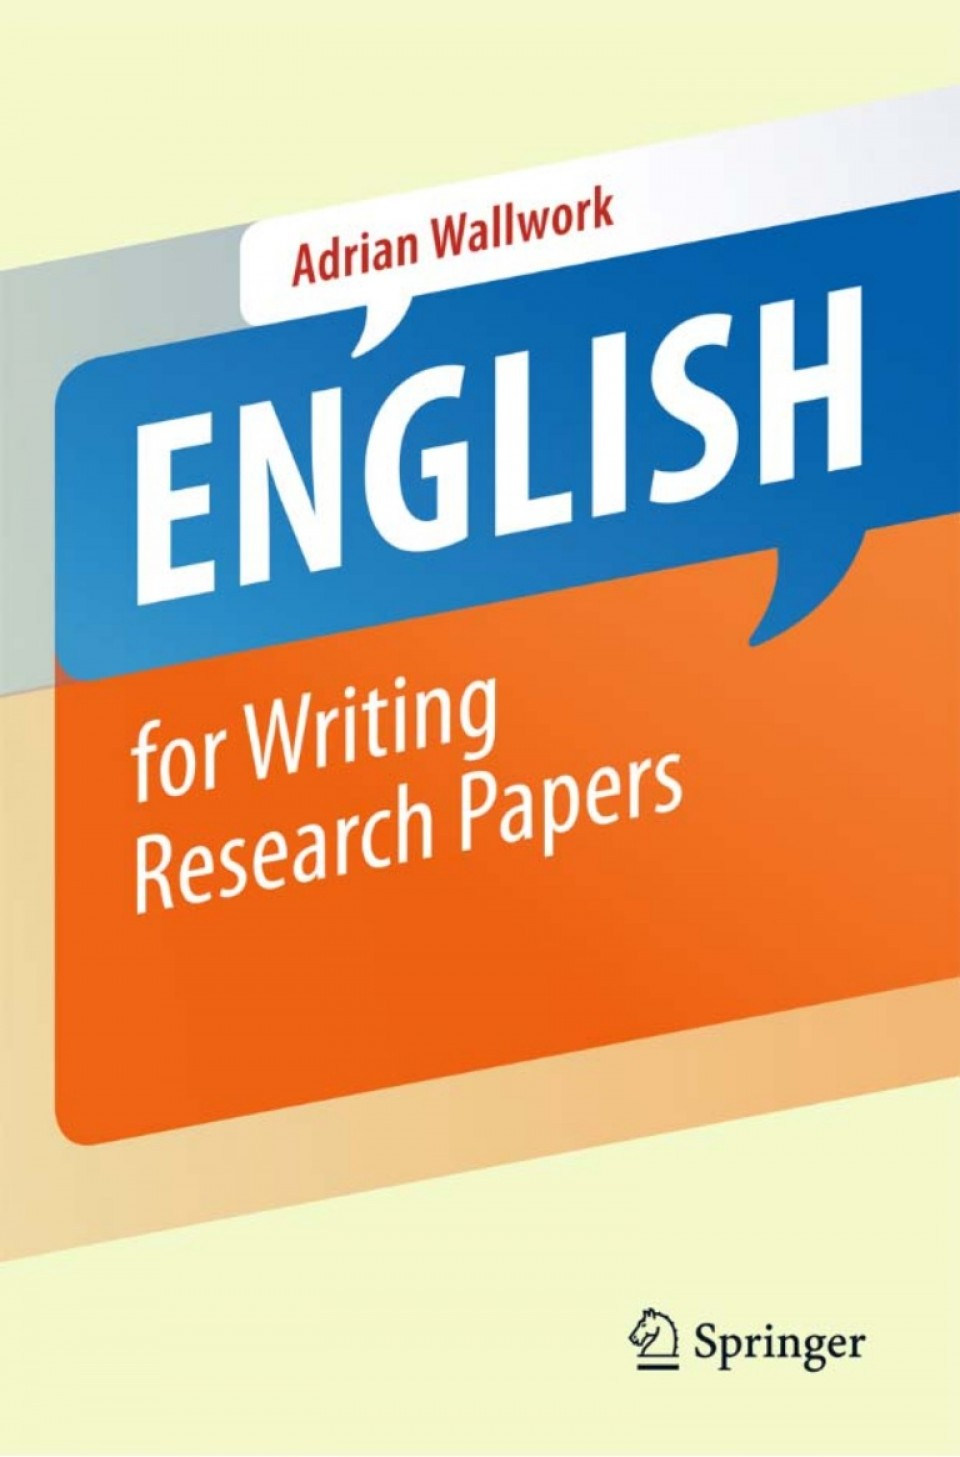 019 Englishforwritingresearchpapers Conversion Gate01 Thumbnail Writing Research Striking Paper Papers A Complete Guide 16th Edition Pdf James D Lester Outline 960